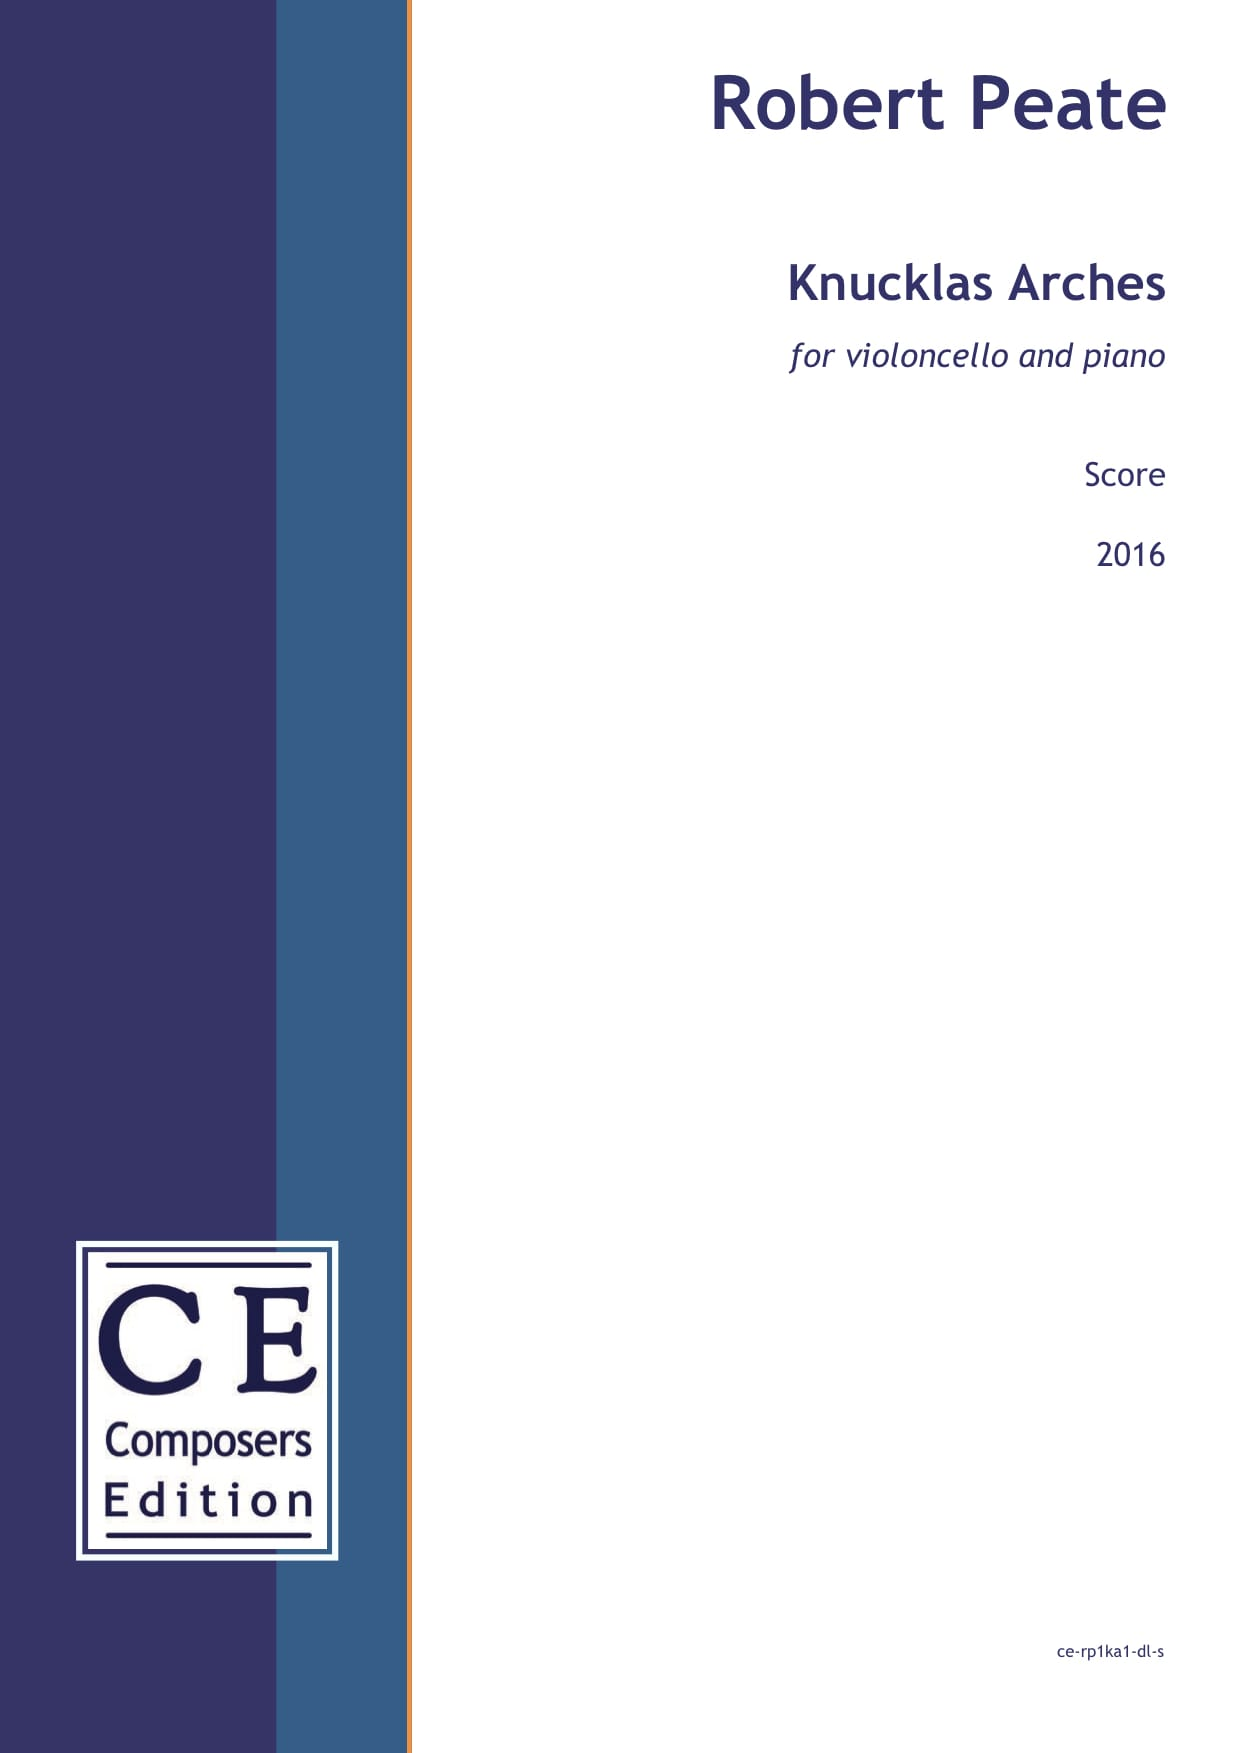 Robert Peate: Knucklas Arches for violoncello and piano